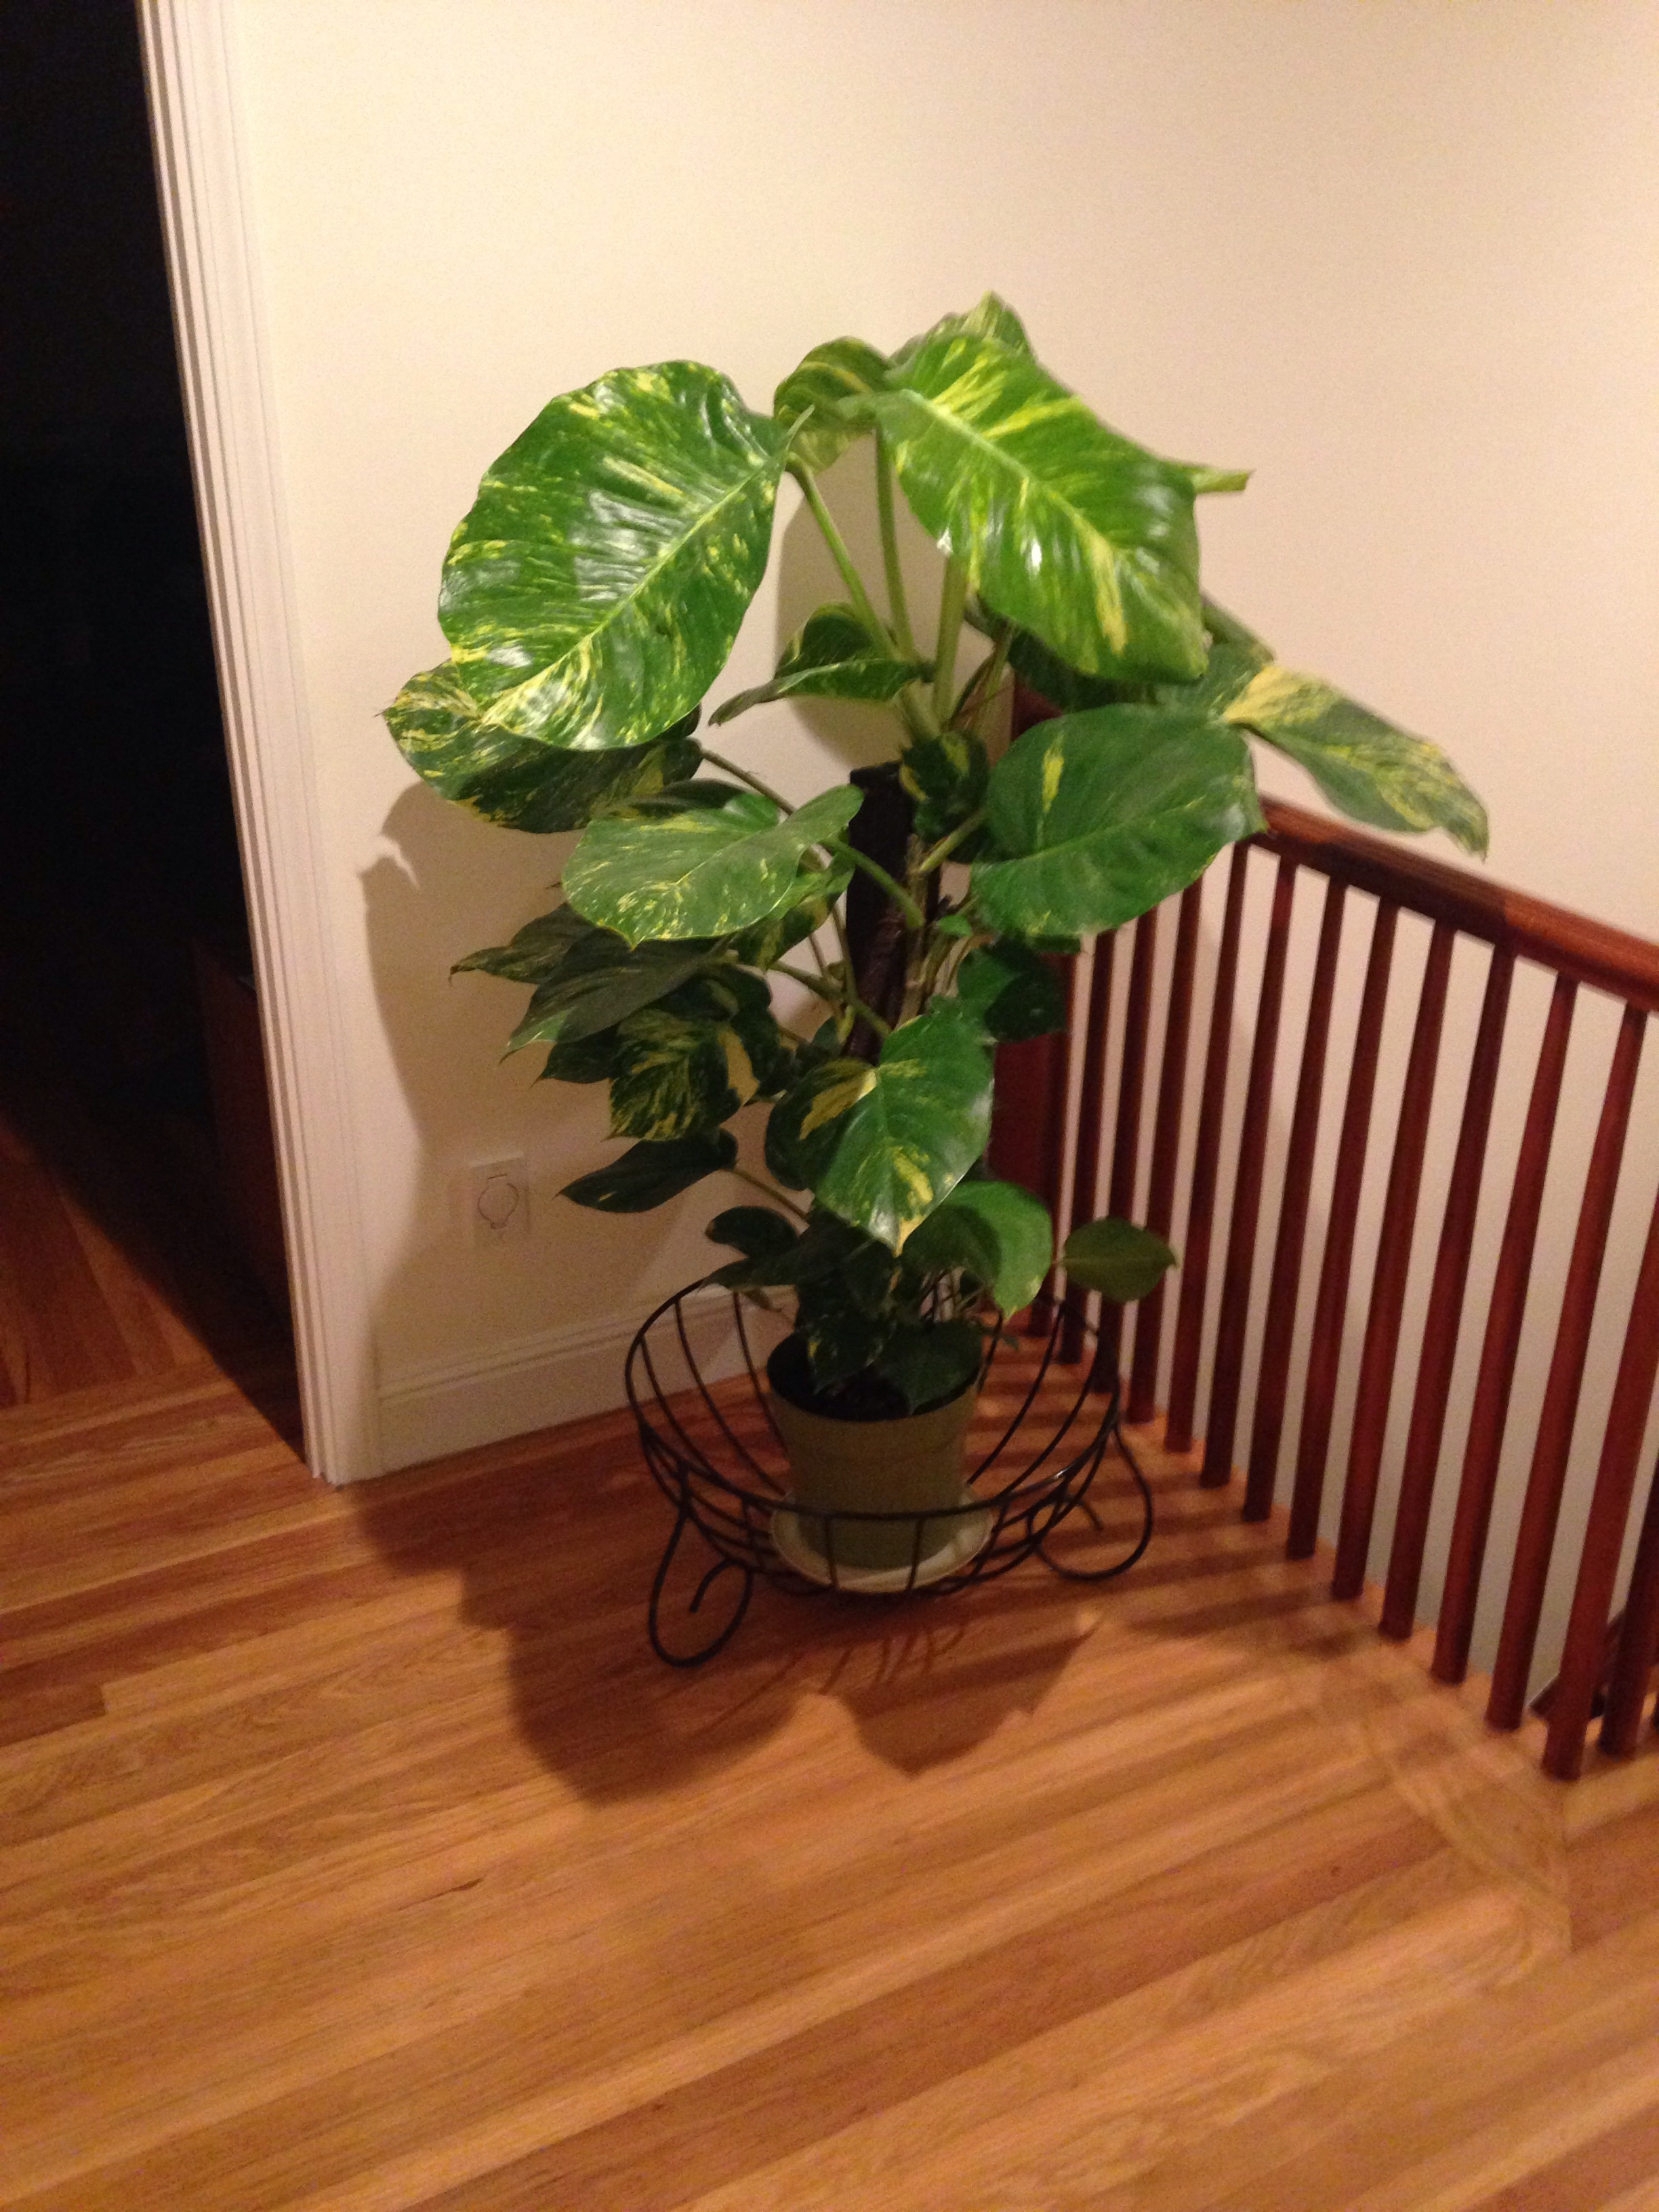 Hallway in the author's home and the mysterious new houseplant there, discovered shortly after reading the Brazilian writer Clarice Lispector, San Francisco, September 14, 2017.